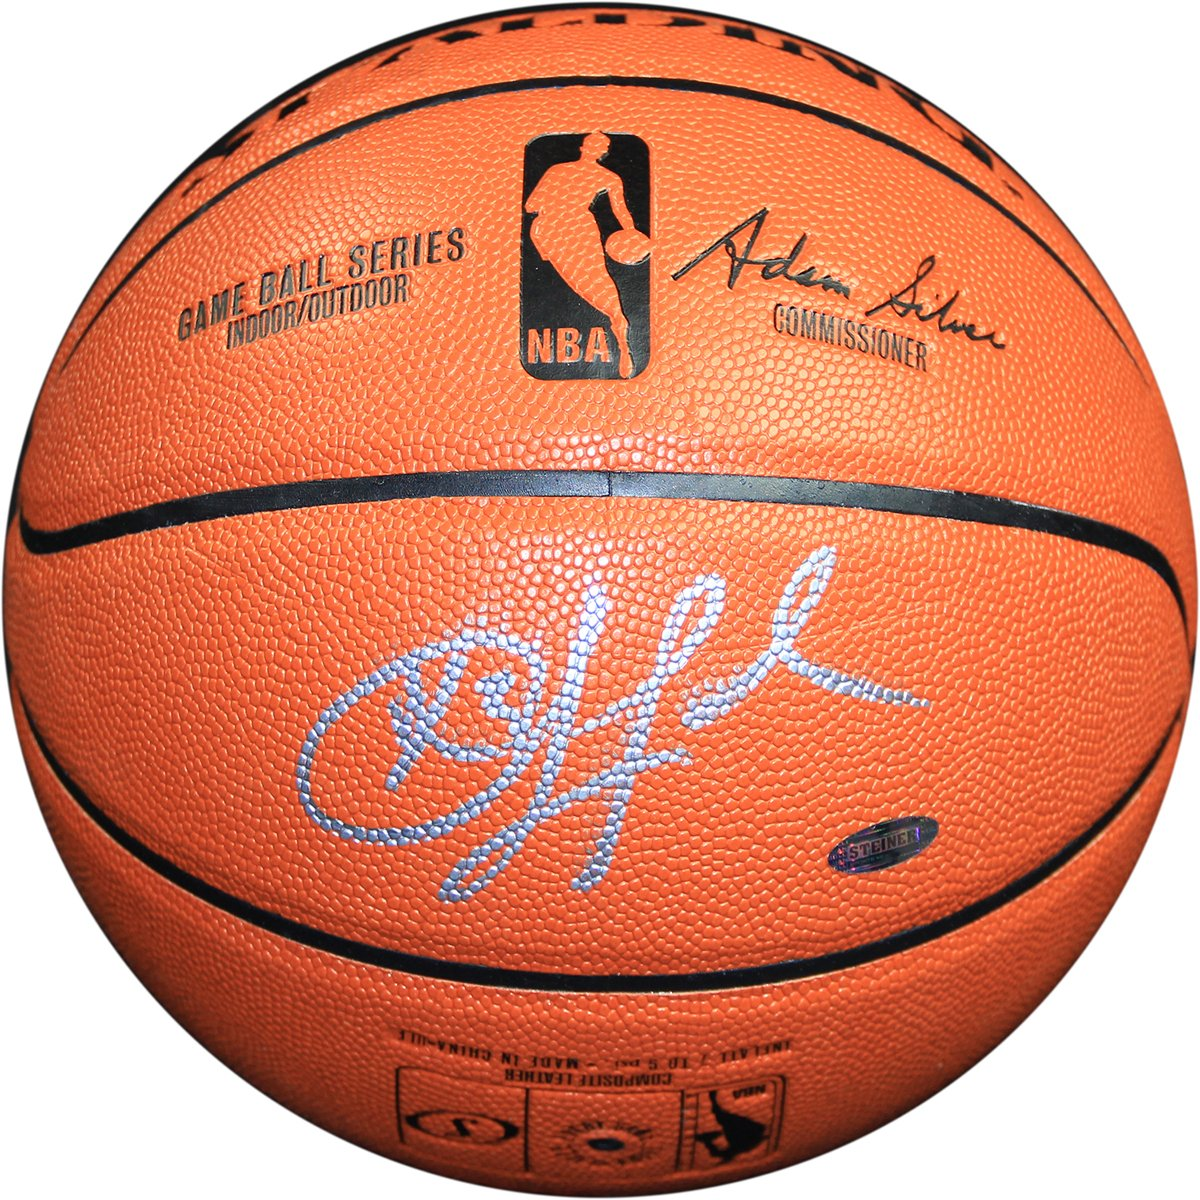 Chris Paul Signed I/O Basketball (Signed in Silver) motorcycle cnc steering damper stabilizer